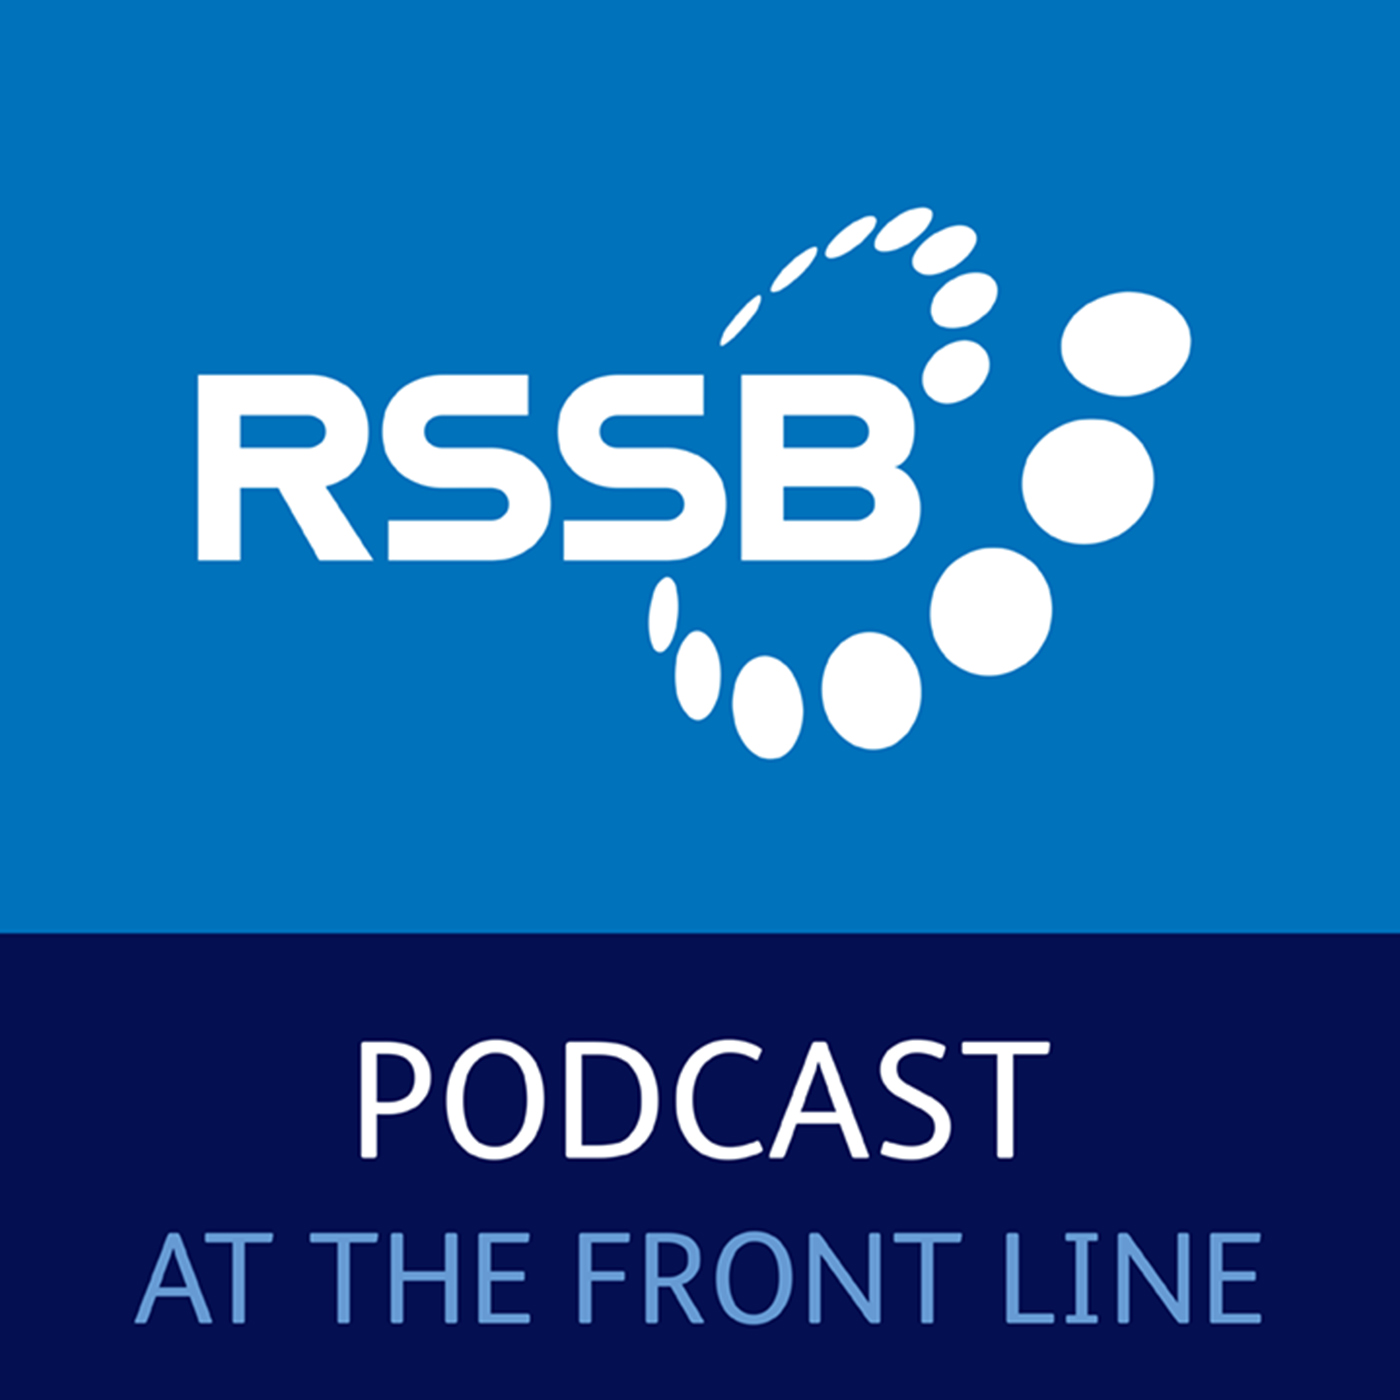 RSSB podcast - at the front line